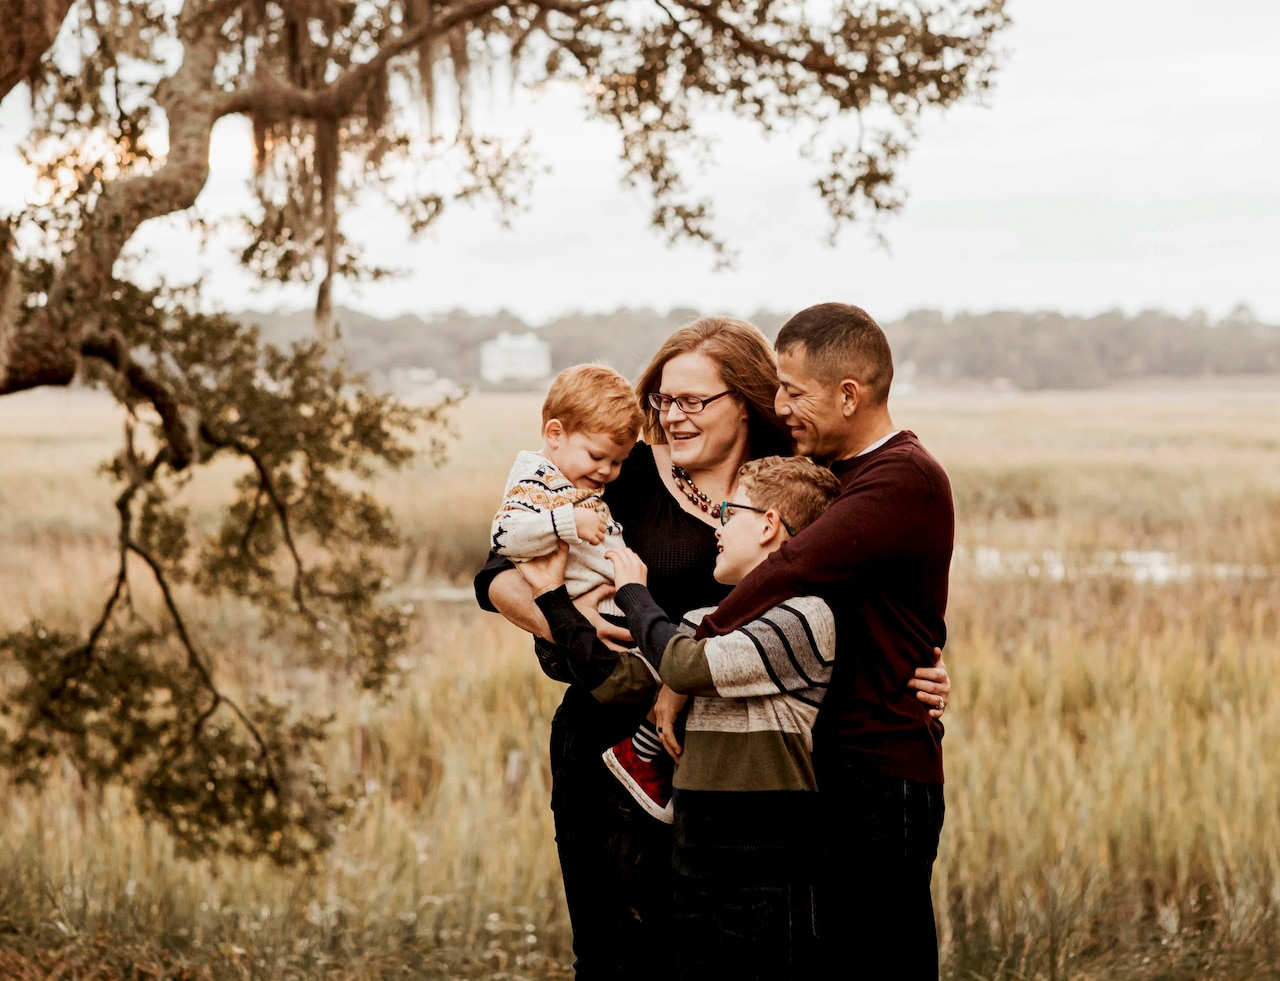 A family poses for a photo in a grassy field.